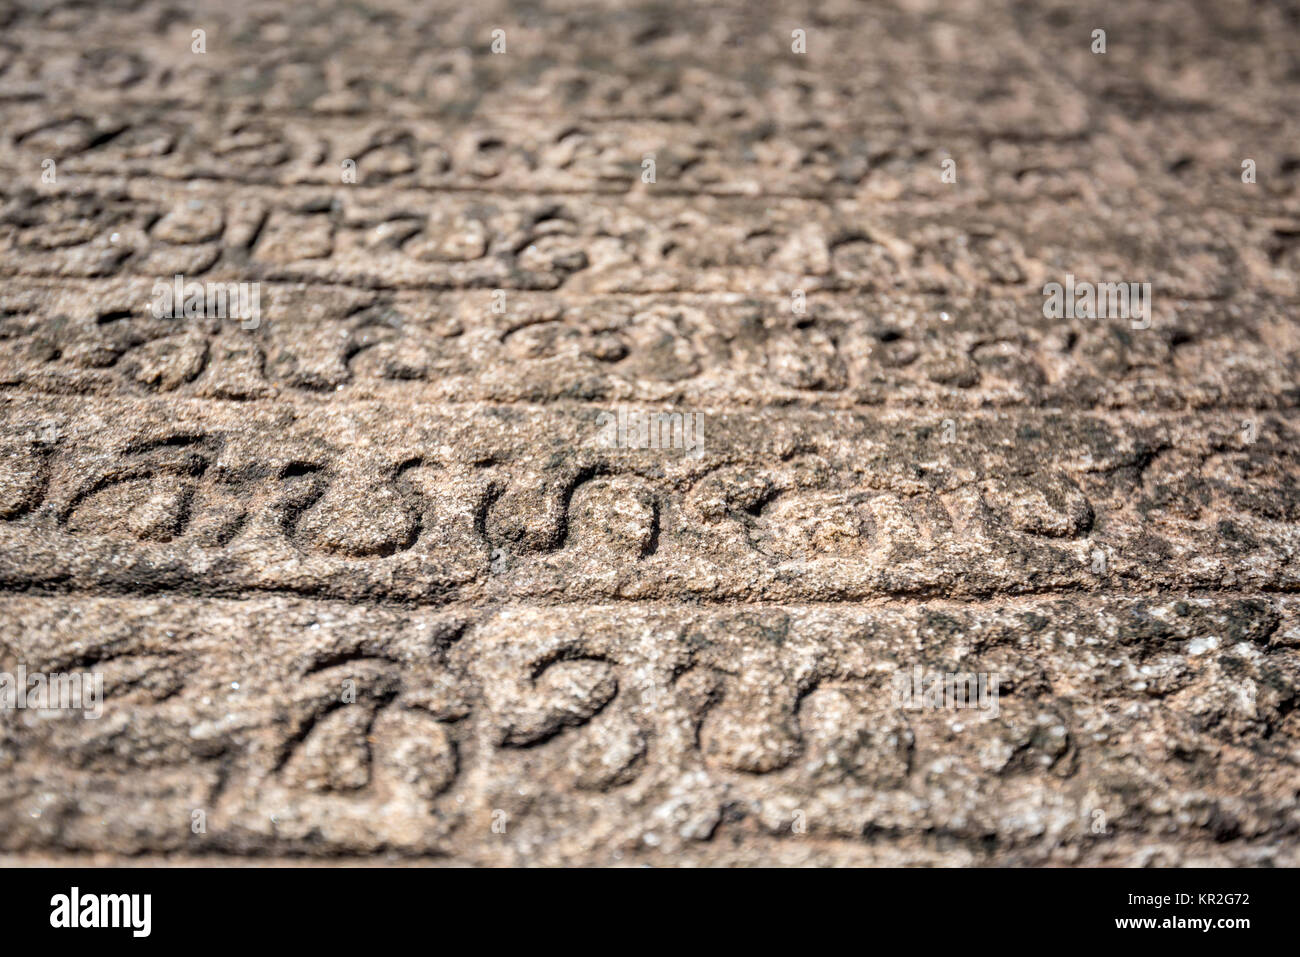 Ancient Sinhalese Scripts - Stock Image